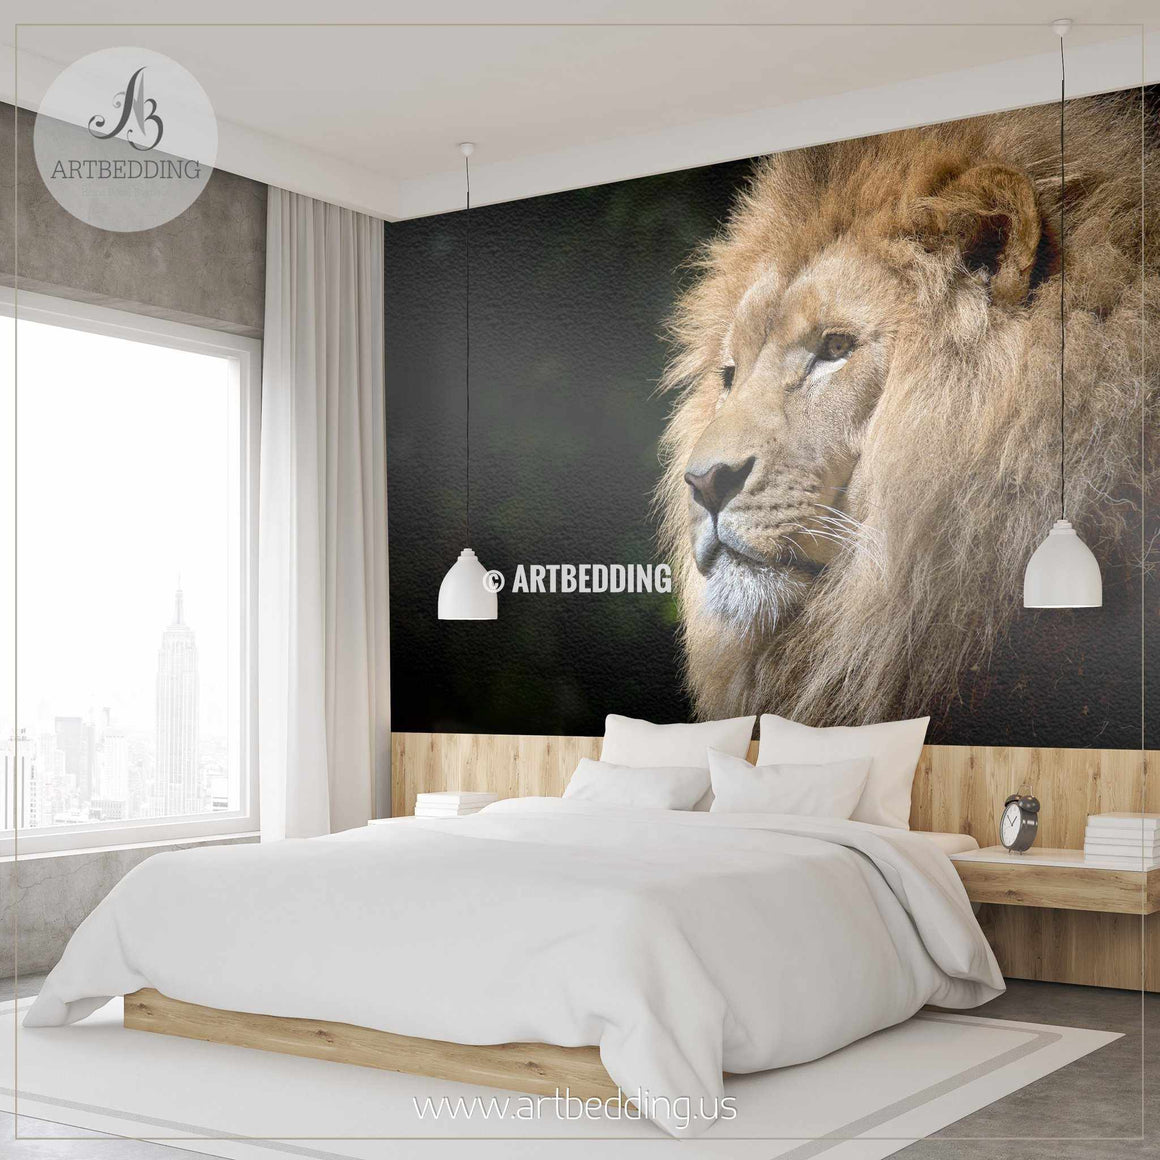 African Lion Wall Mural, African Lion Self Adhesive Peel & Stick Photo Mural wall mural